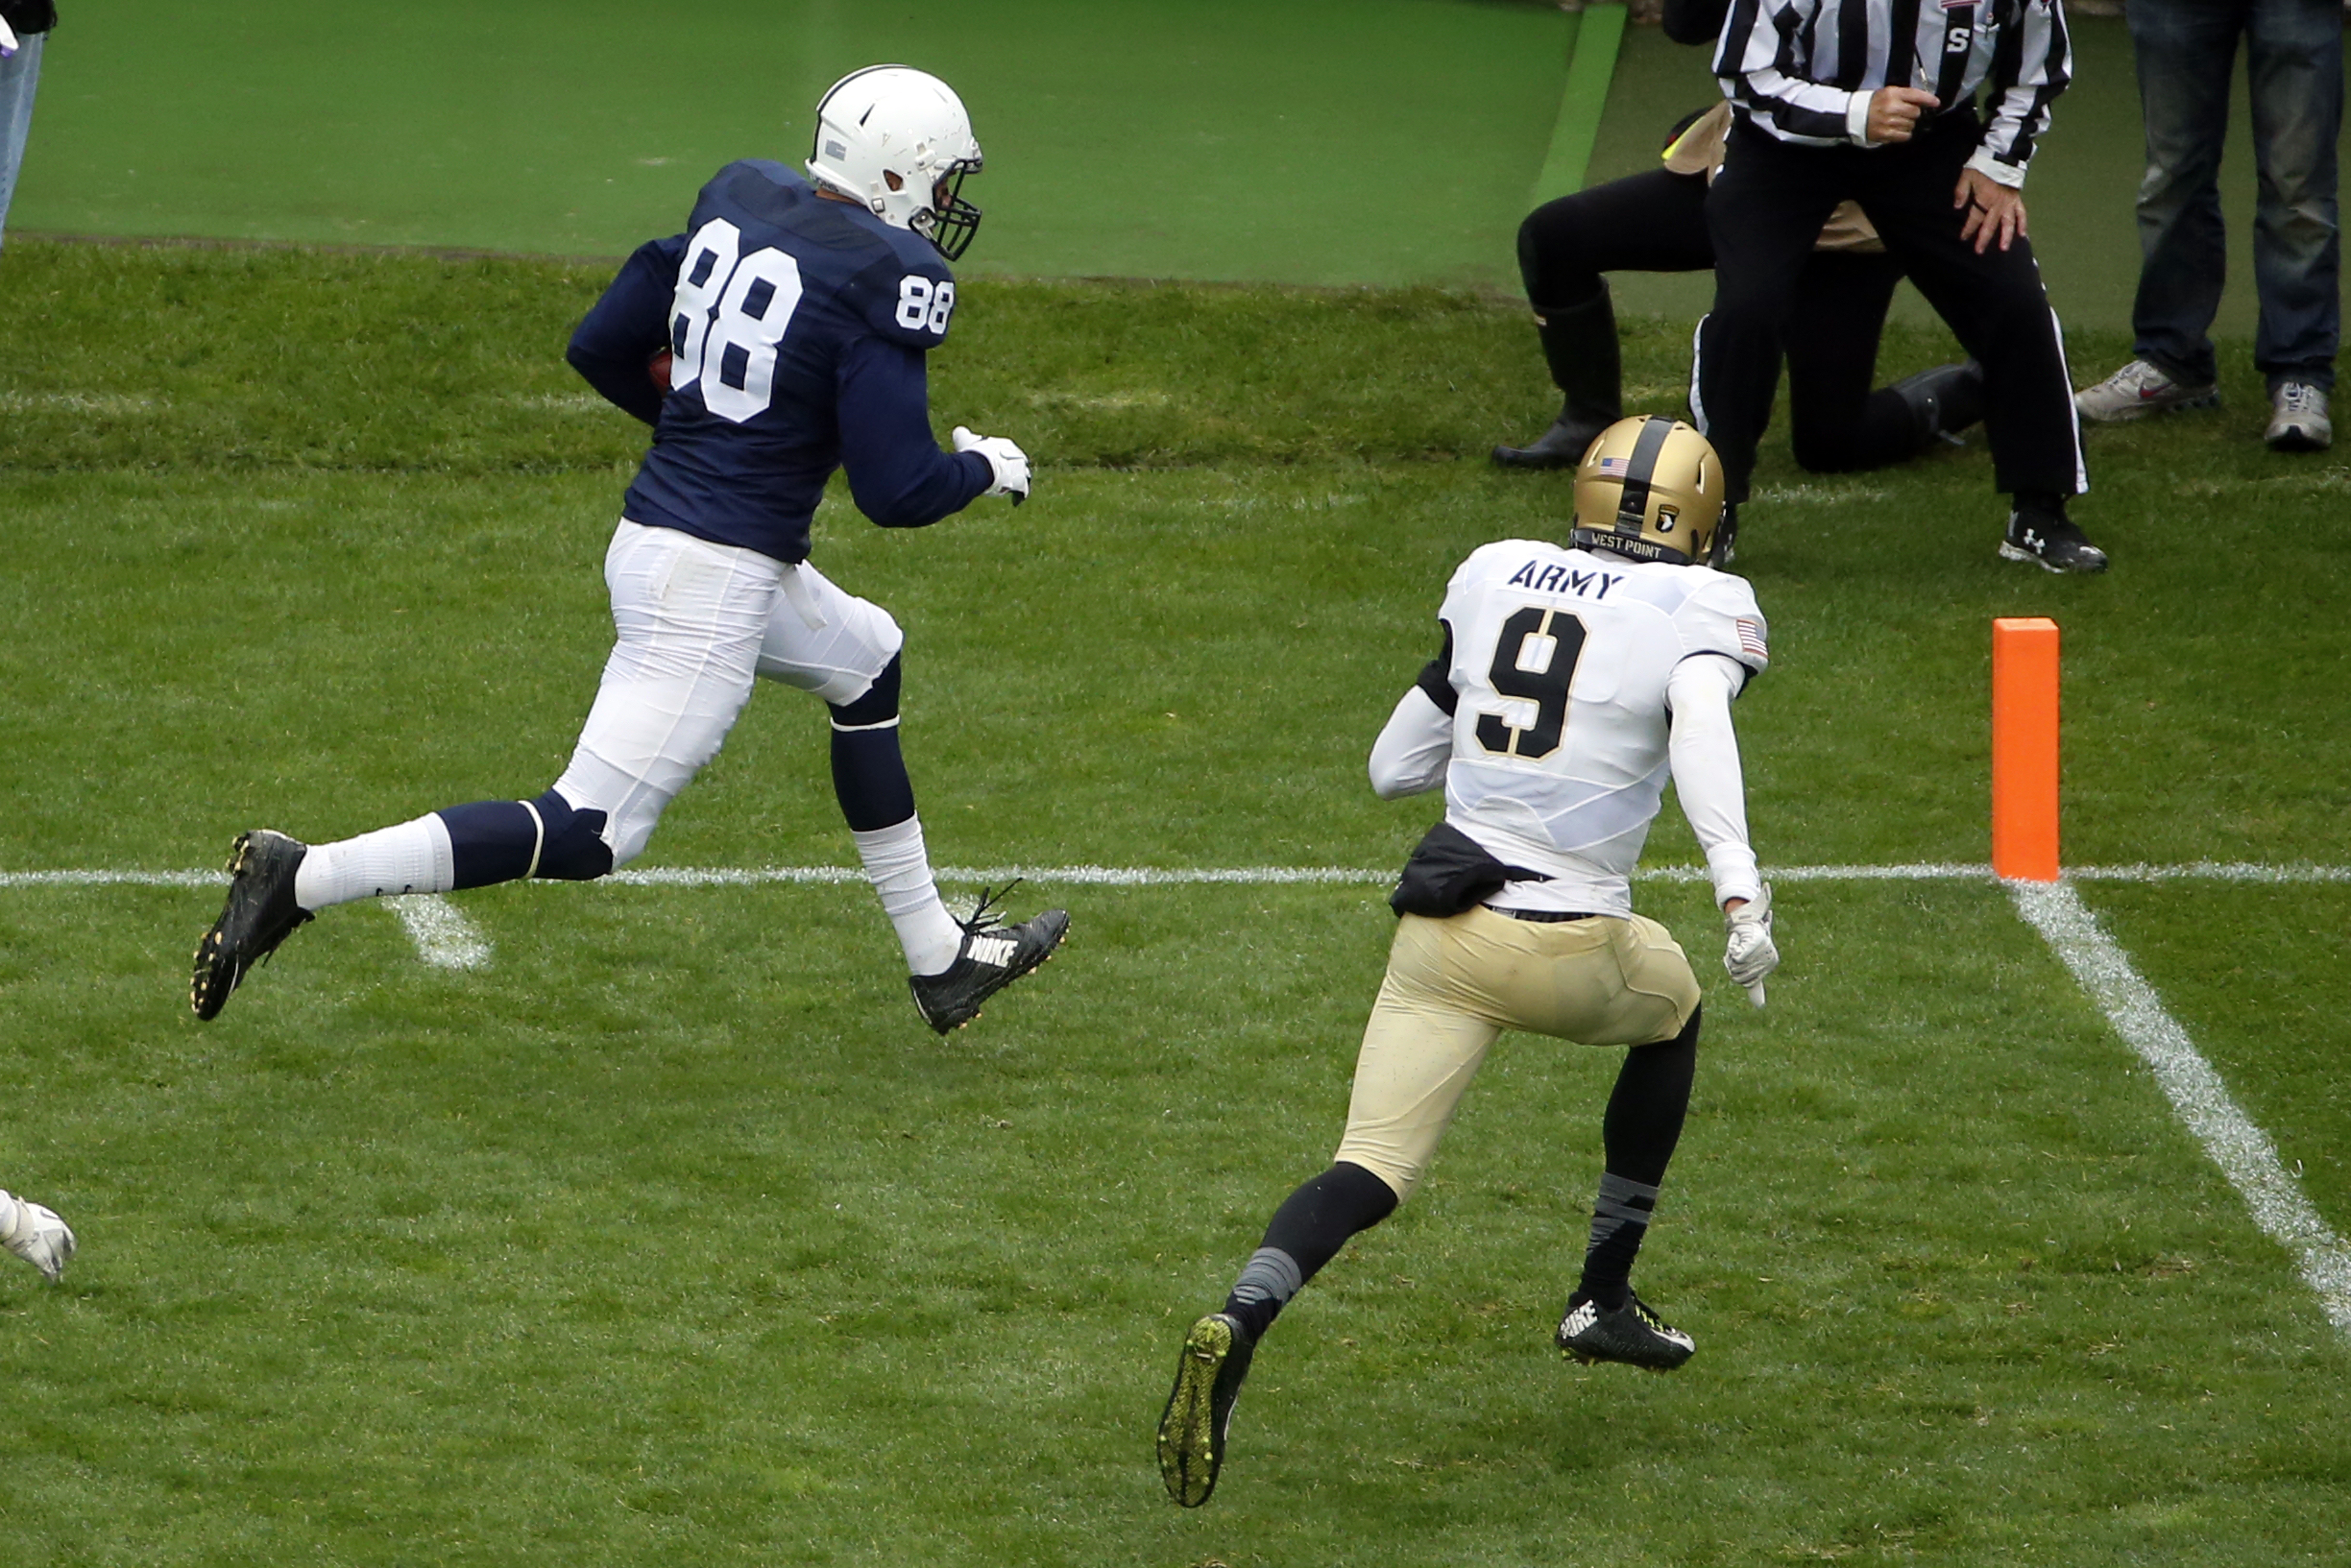 Penn State tight end Mike Gesicki (88) beats Army defensive back Xavier Moss (9) to the end zone for a touchdown after taking a pass from quarterback Christian Hackenberg during the second half of an NCAA college football game in State College, Pa., Satur